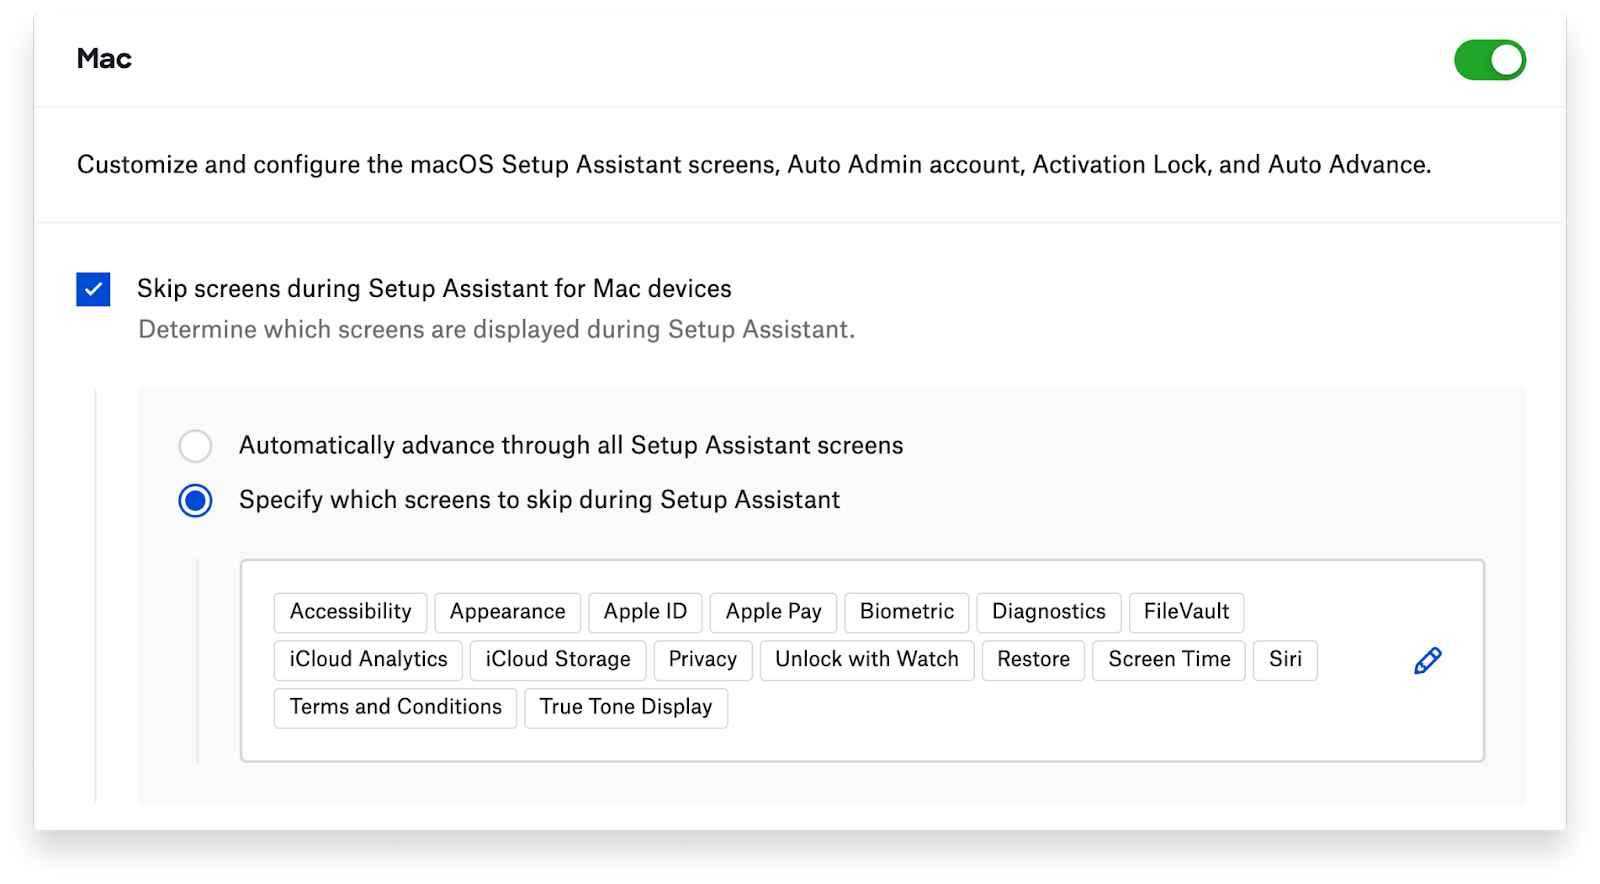 Showing which Setup Assistant screens will be skipped.